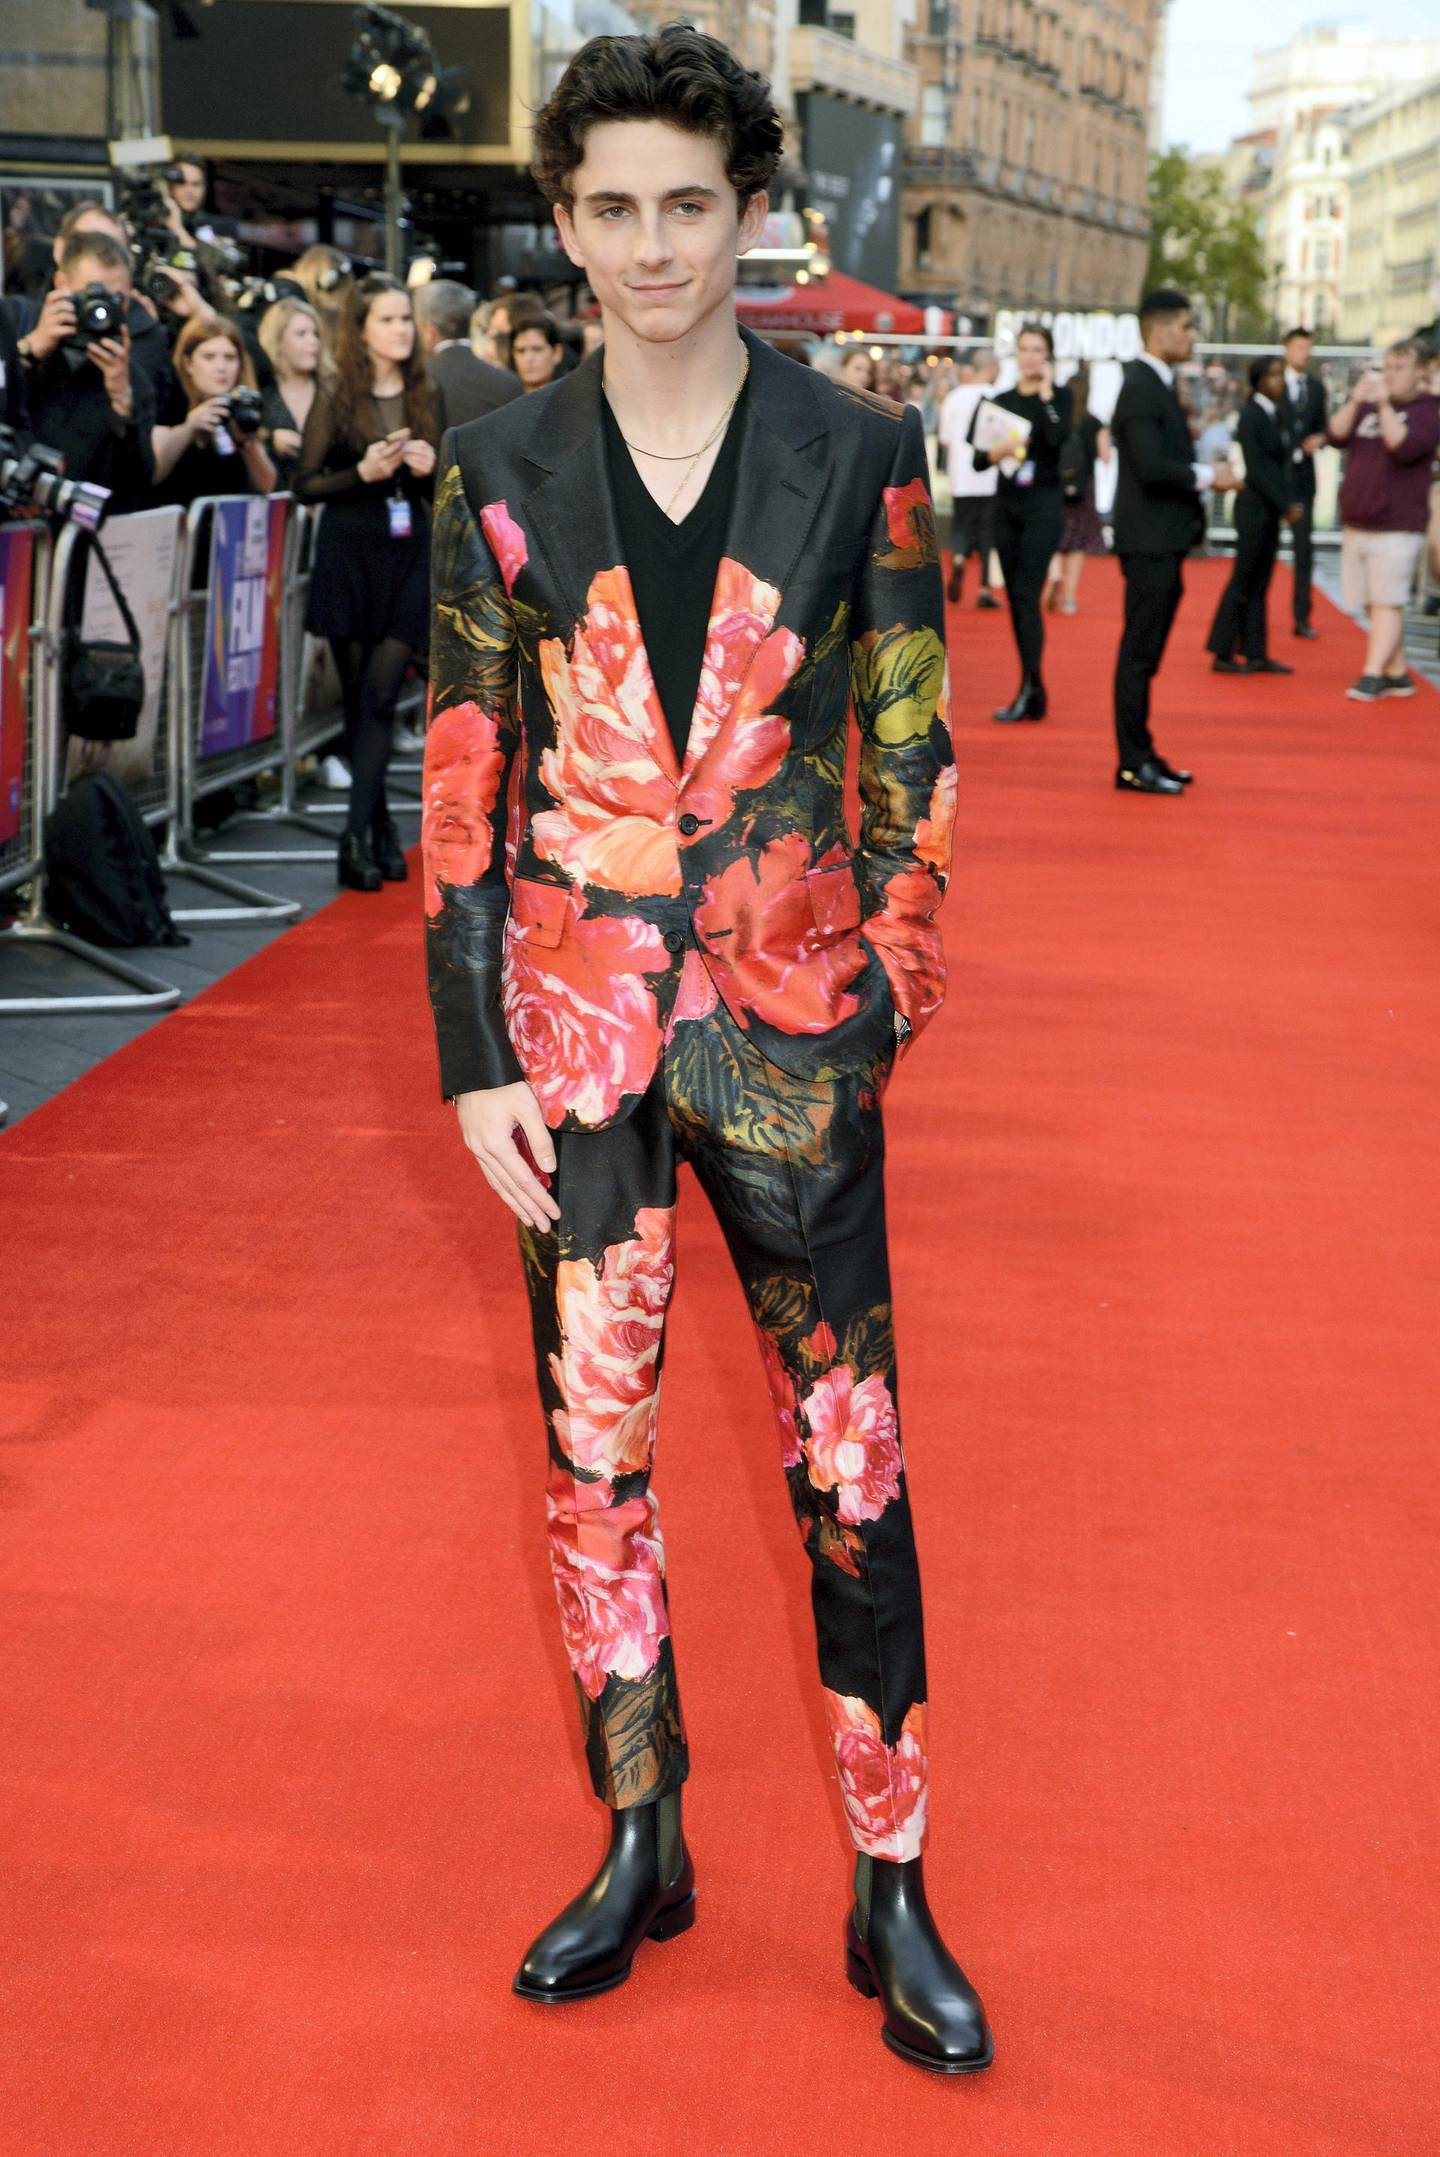 """LONDON, ENGLAND - OCTOBER 13:  Timothee Chalamet attends the UK Premiere of """"Beautiful Boy"""" & Headline gala during the 62nd BFI London Film Festival on October 13, 2018 in London, England.  (Photo by Dave J Hogan/Dave J Hogan/Getty Images)"""